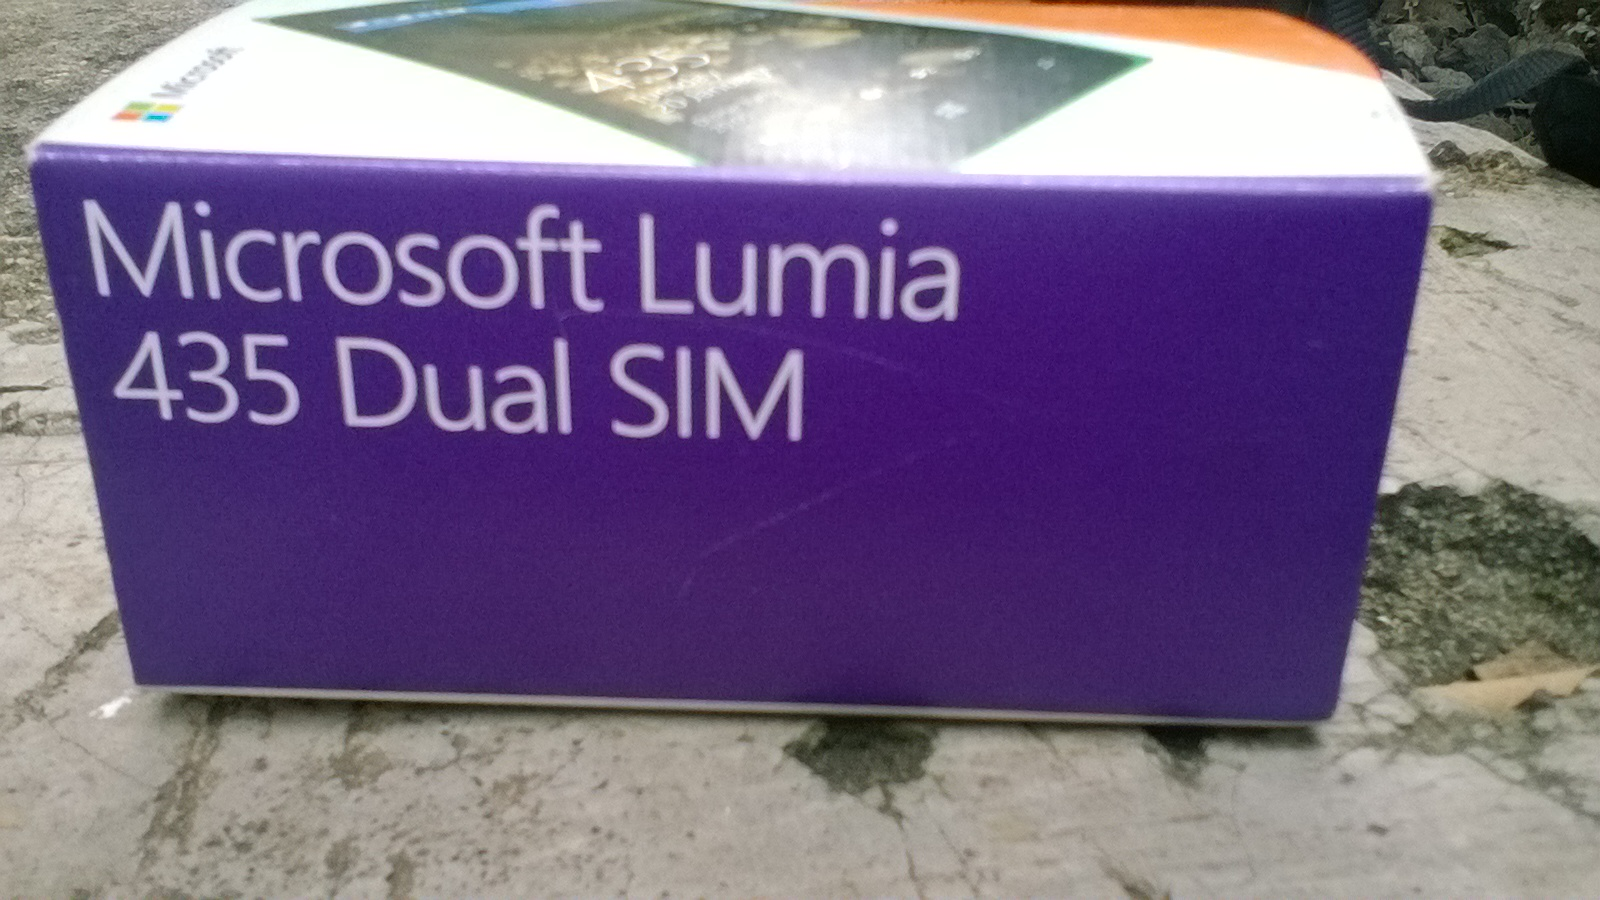 Lumia 435 image sample